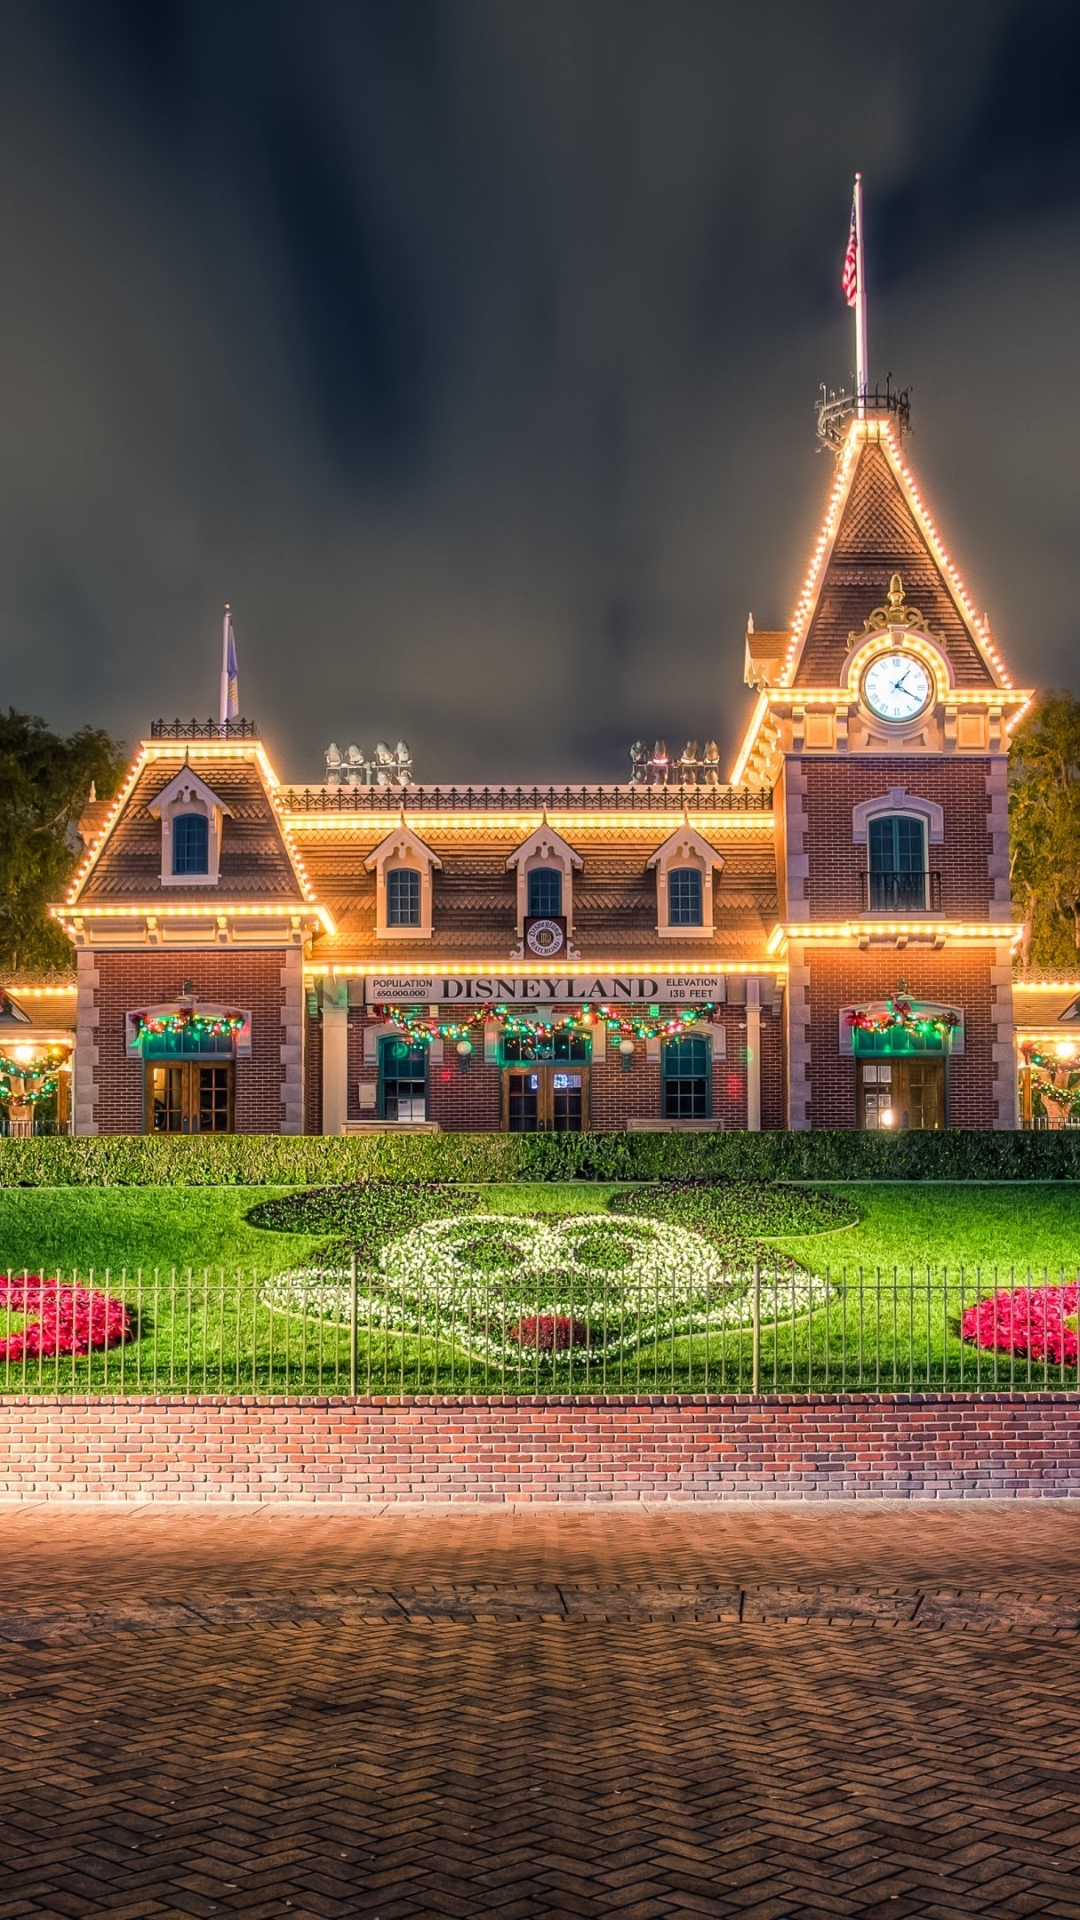 Disneyland Iphone Wallpaper Hd Wallpaper Collections